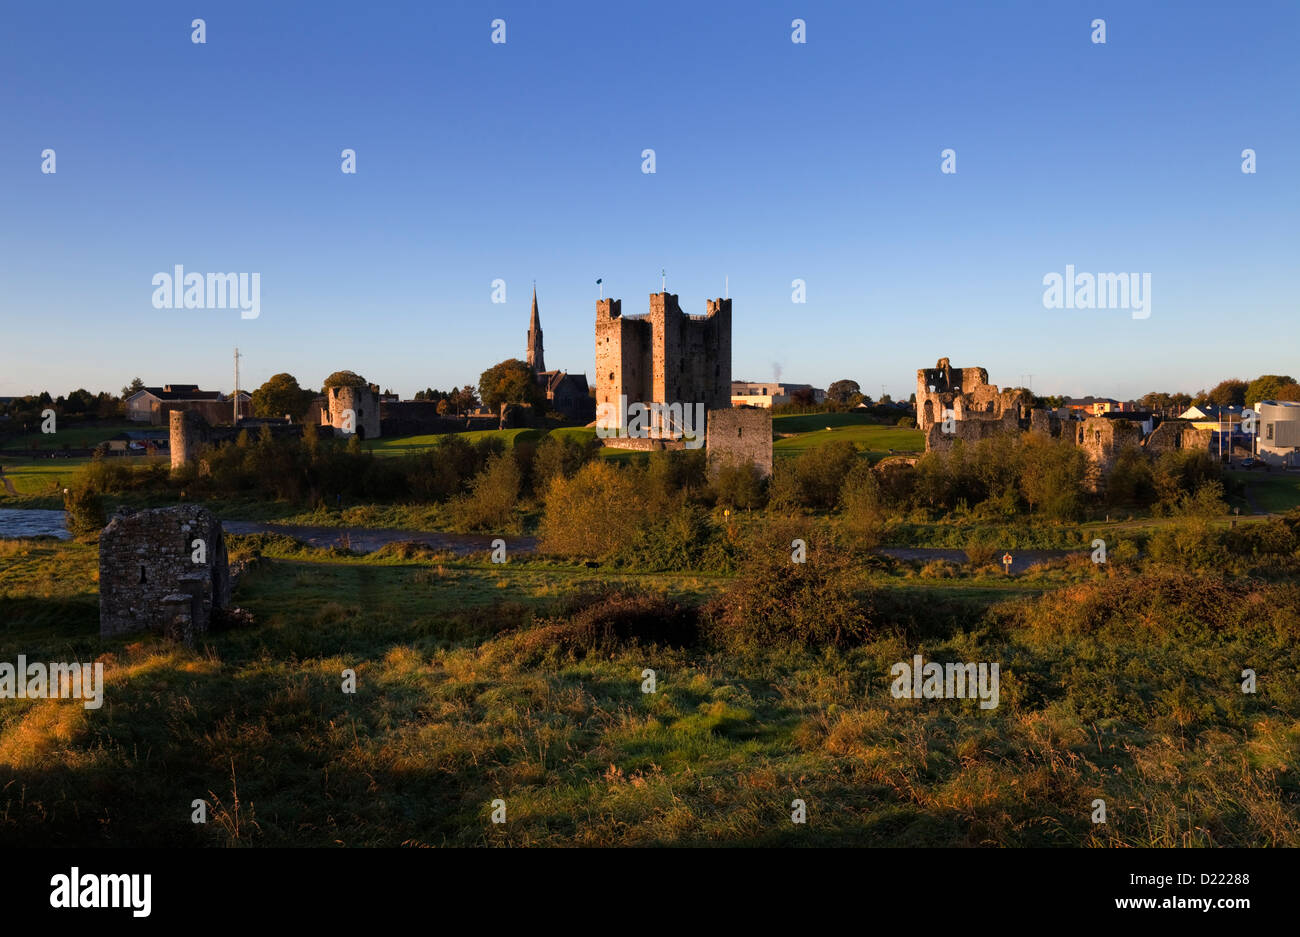 Anglo-Norman Trim Castle on the bank of the River Boyne, used as a film location for the film 'Braveheart' - Stock Image